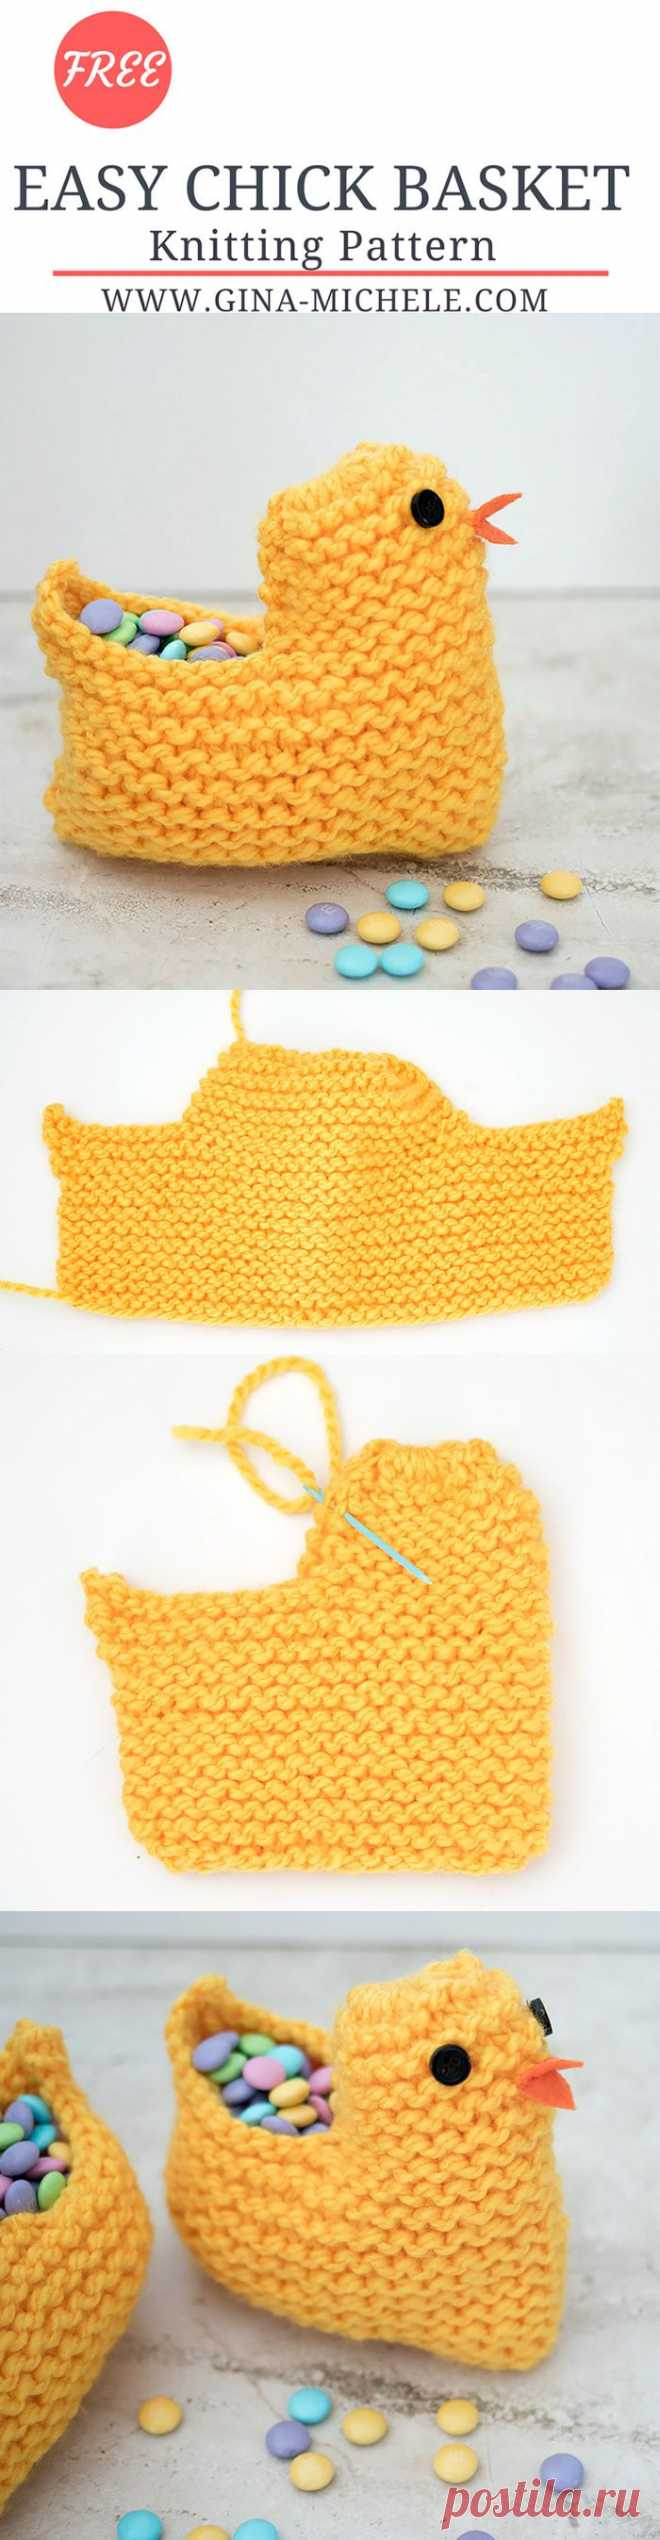 FREE knitting pattern for this Easy Easter Chick Basket! Flat knit & beginner friendly! #knitting